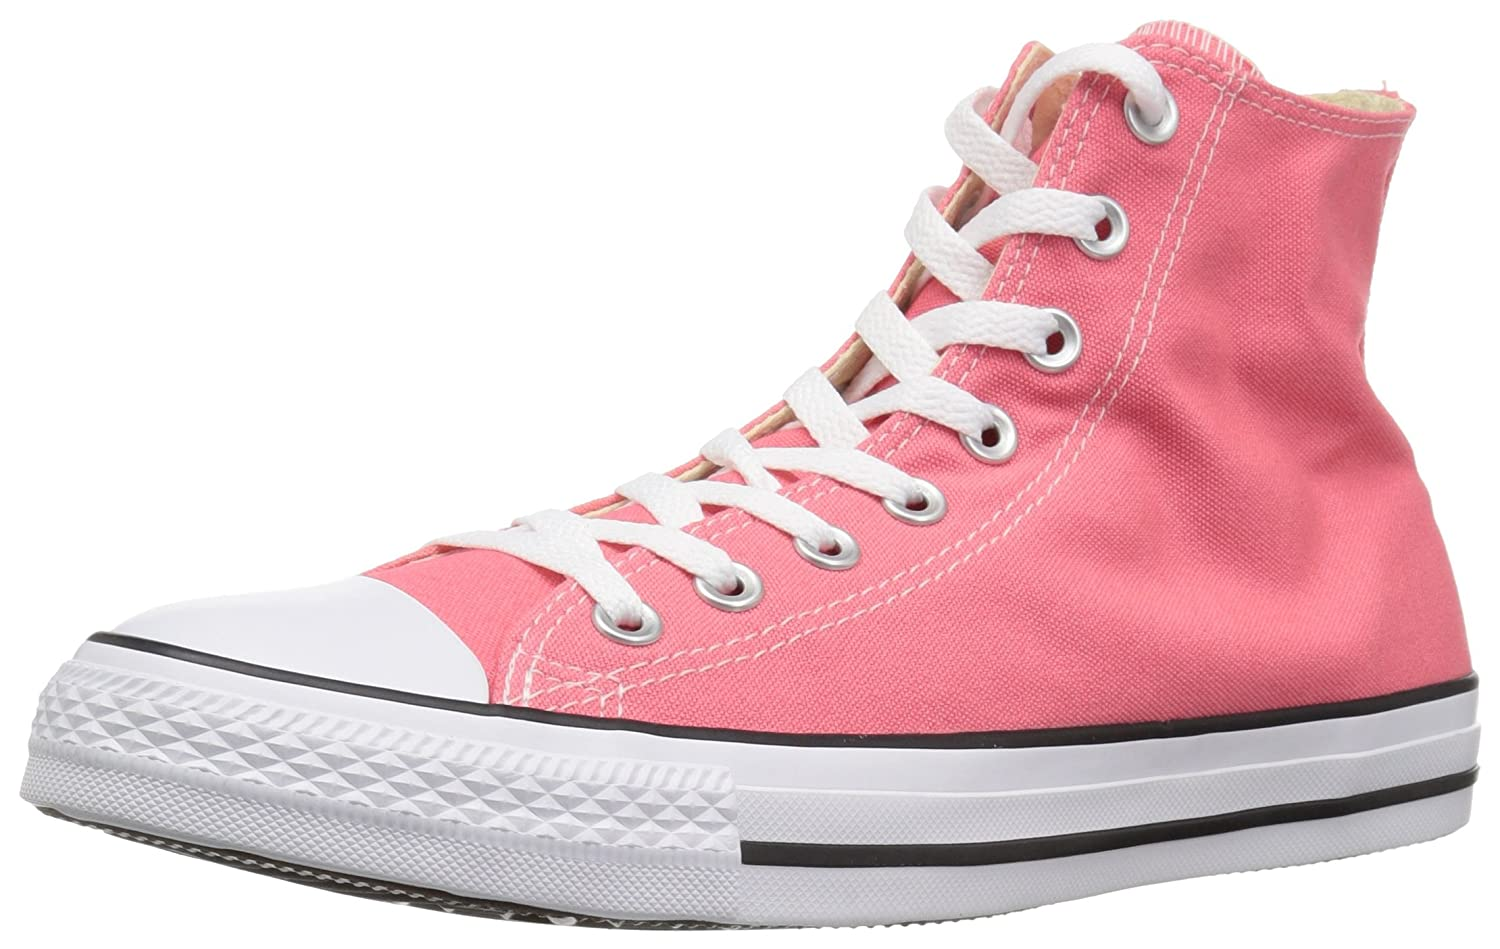 Converse Chuck Taylor All Star 2018 Seasonal High Top Sneaker B078NG9CMZ 7.5 M US|Punch Coral